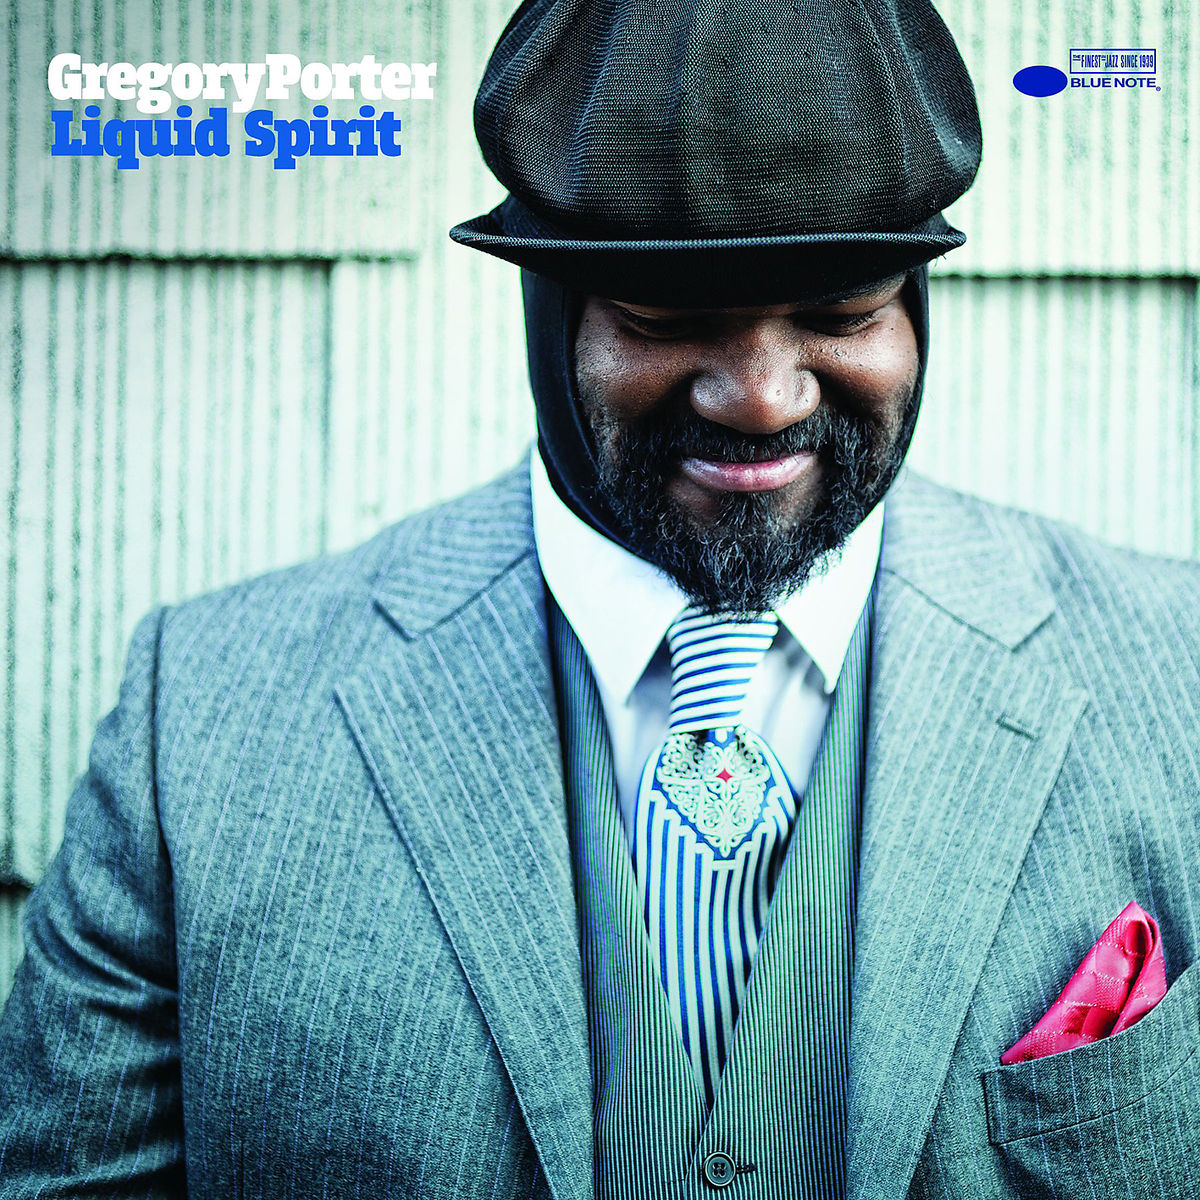 Liquid Spirit - Gregory Porter - Musik - BLUE NOTE - 0602537431540 - 2/9-2013